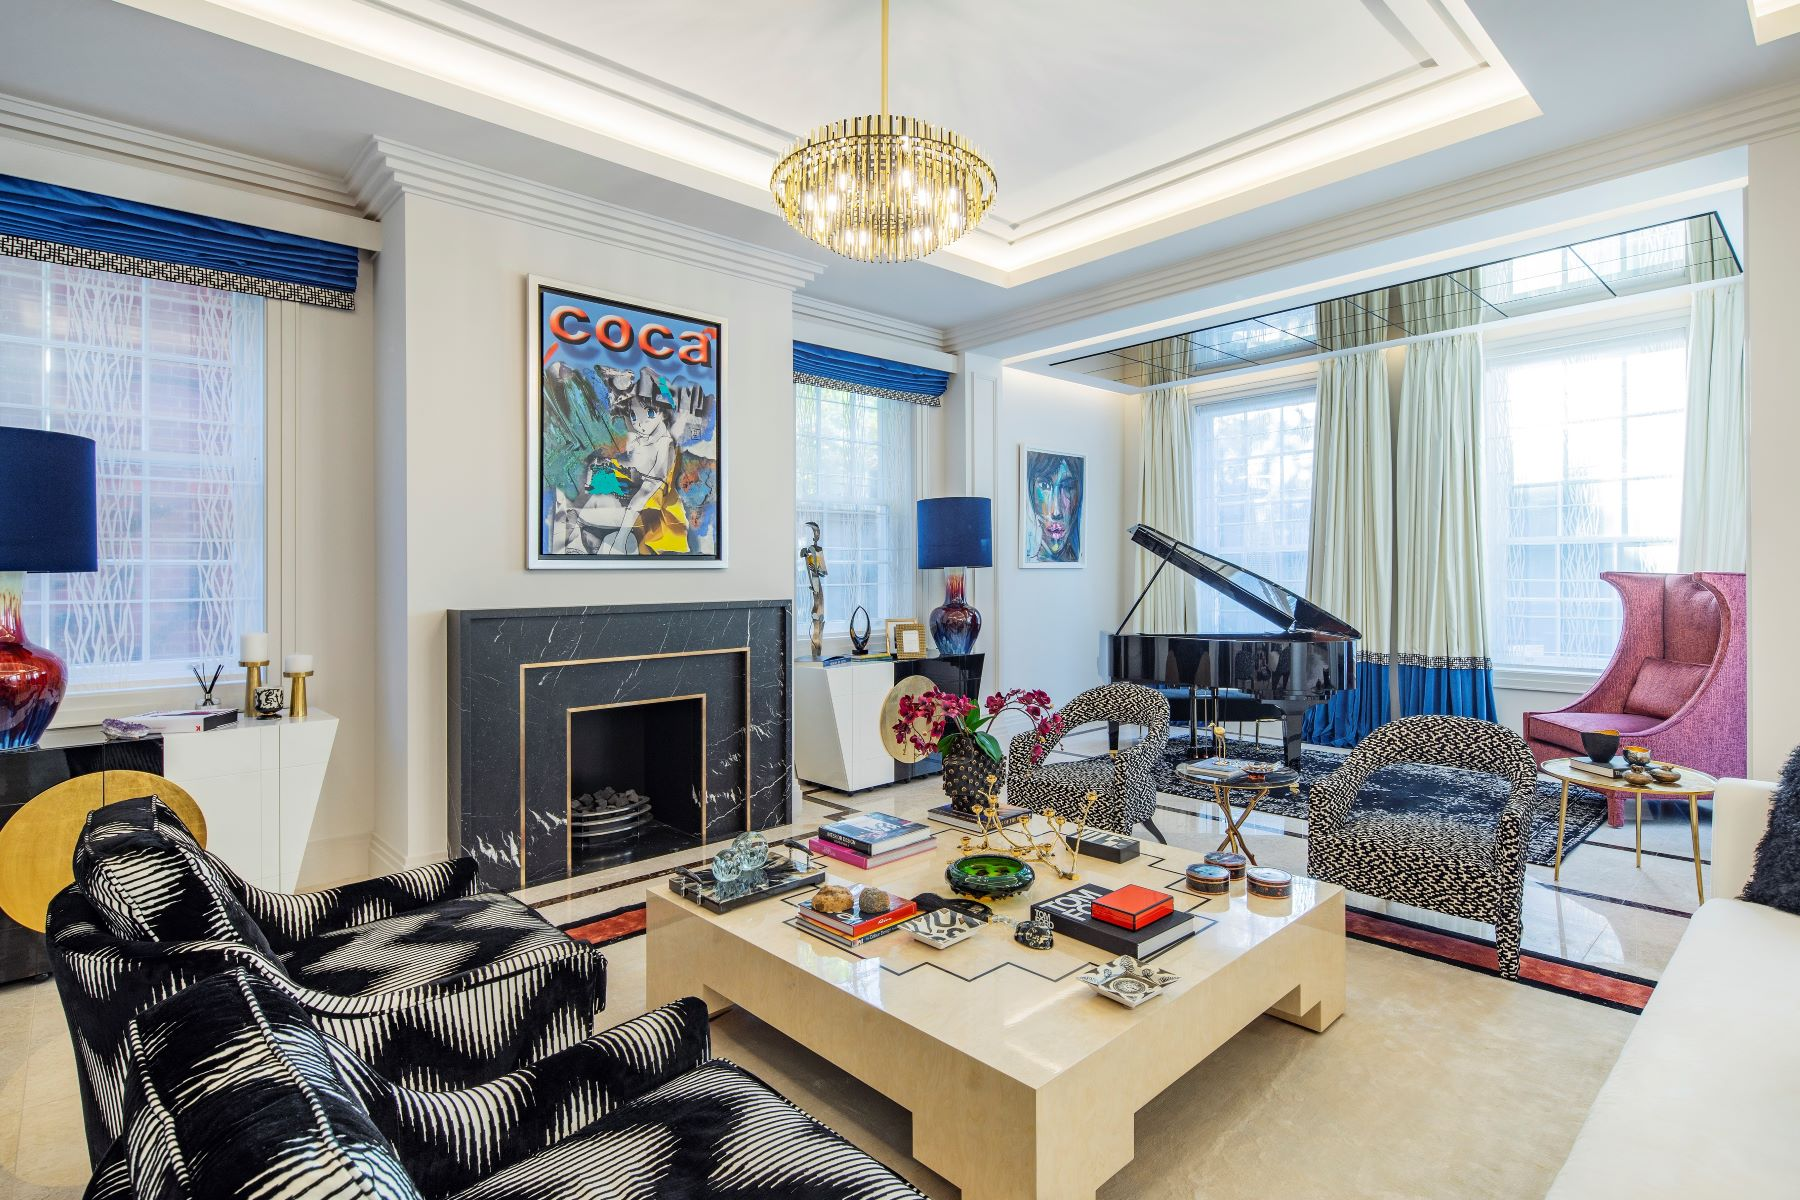 Additional photo for property listing at Avenue Road,St John's Wood, NW8 87 Avenue Road, St. John's Wood Londen, Engeland NW8 6JD Verenigd Koninkrijk